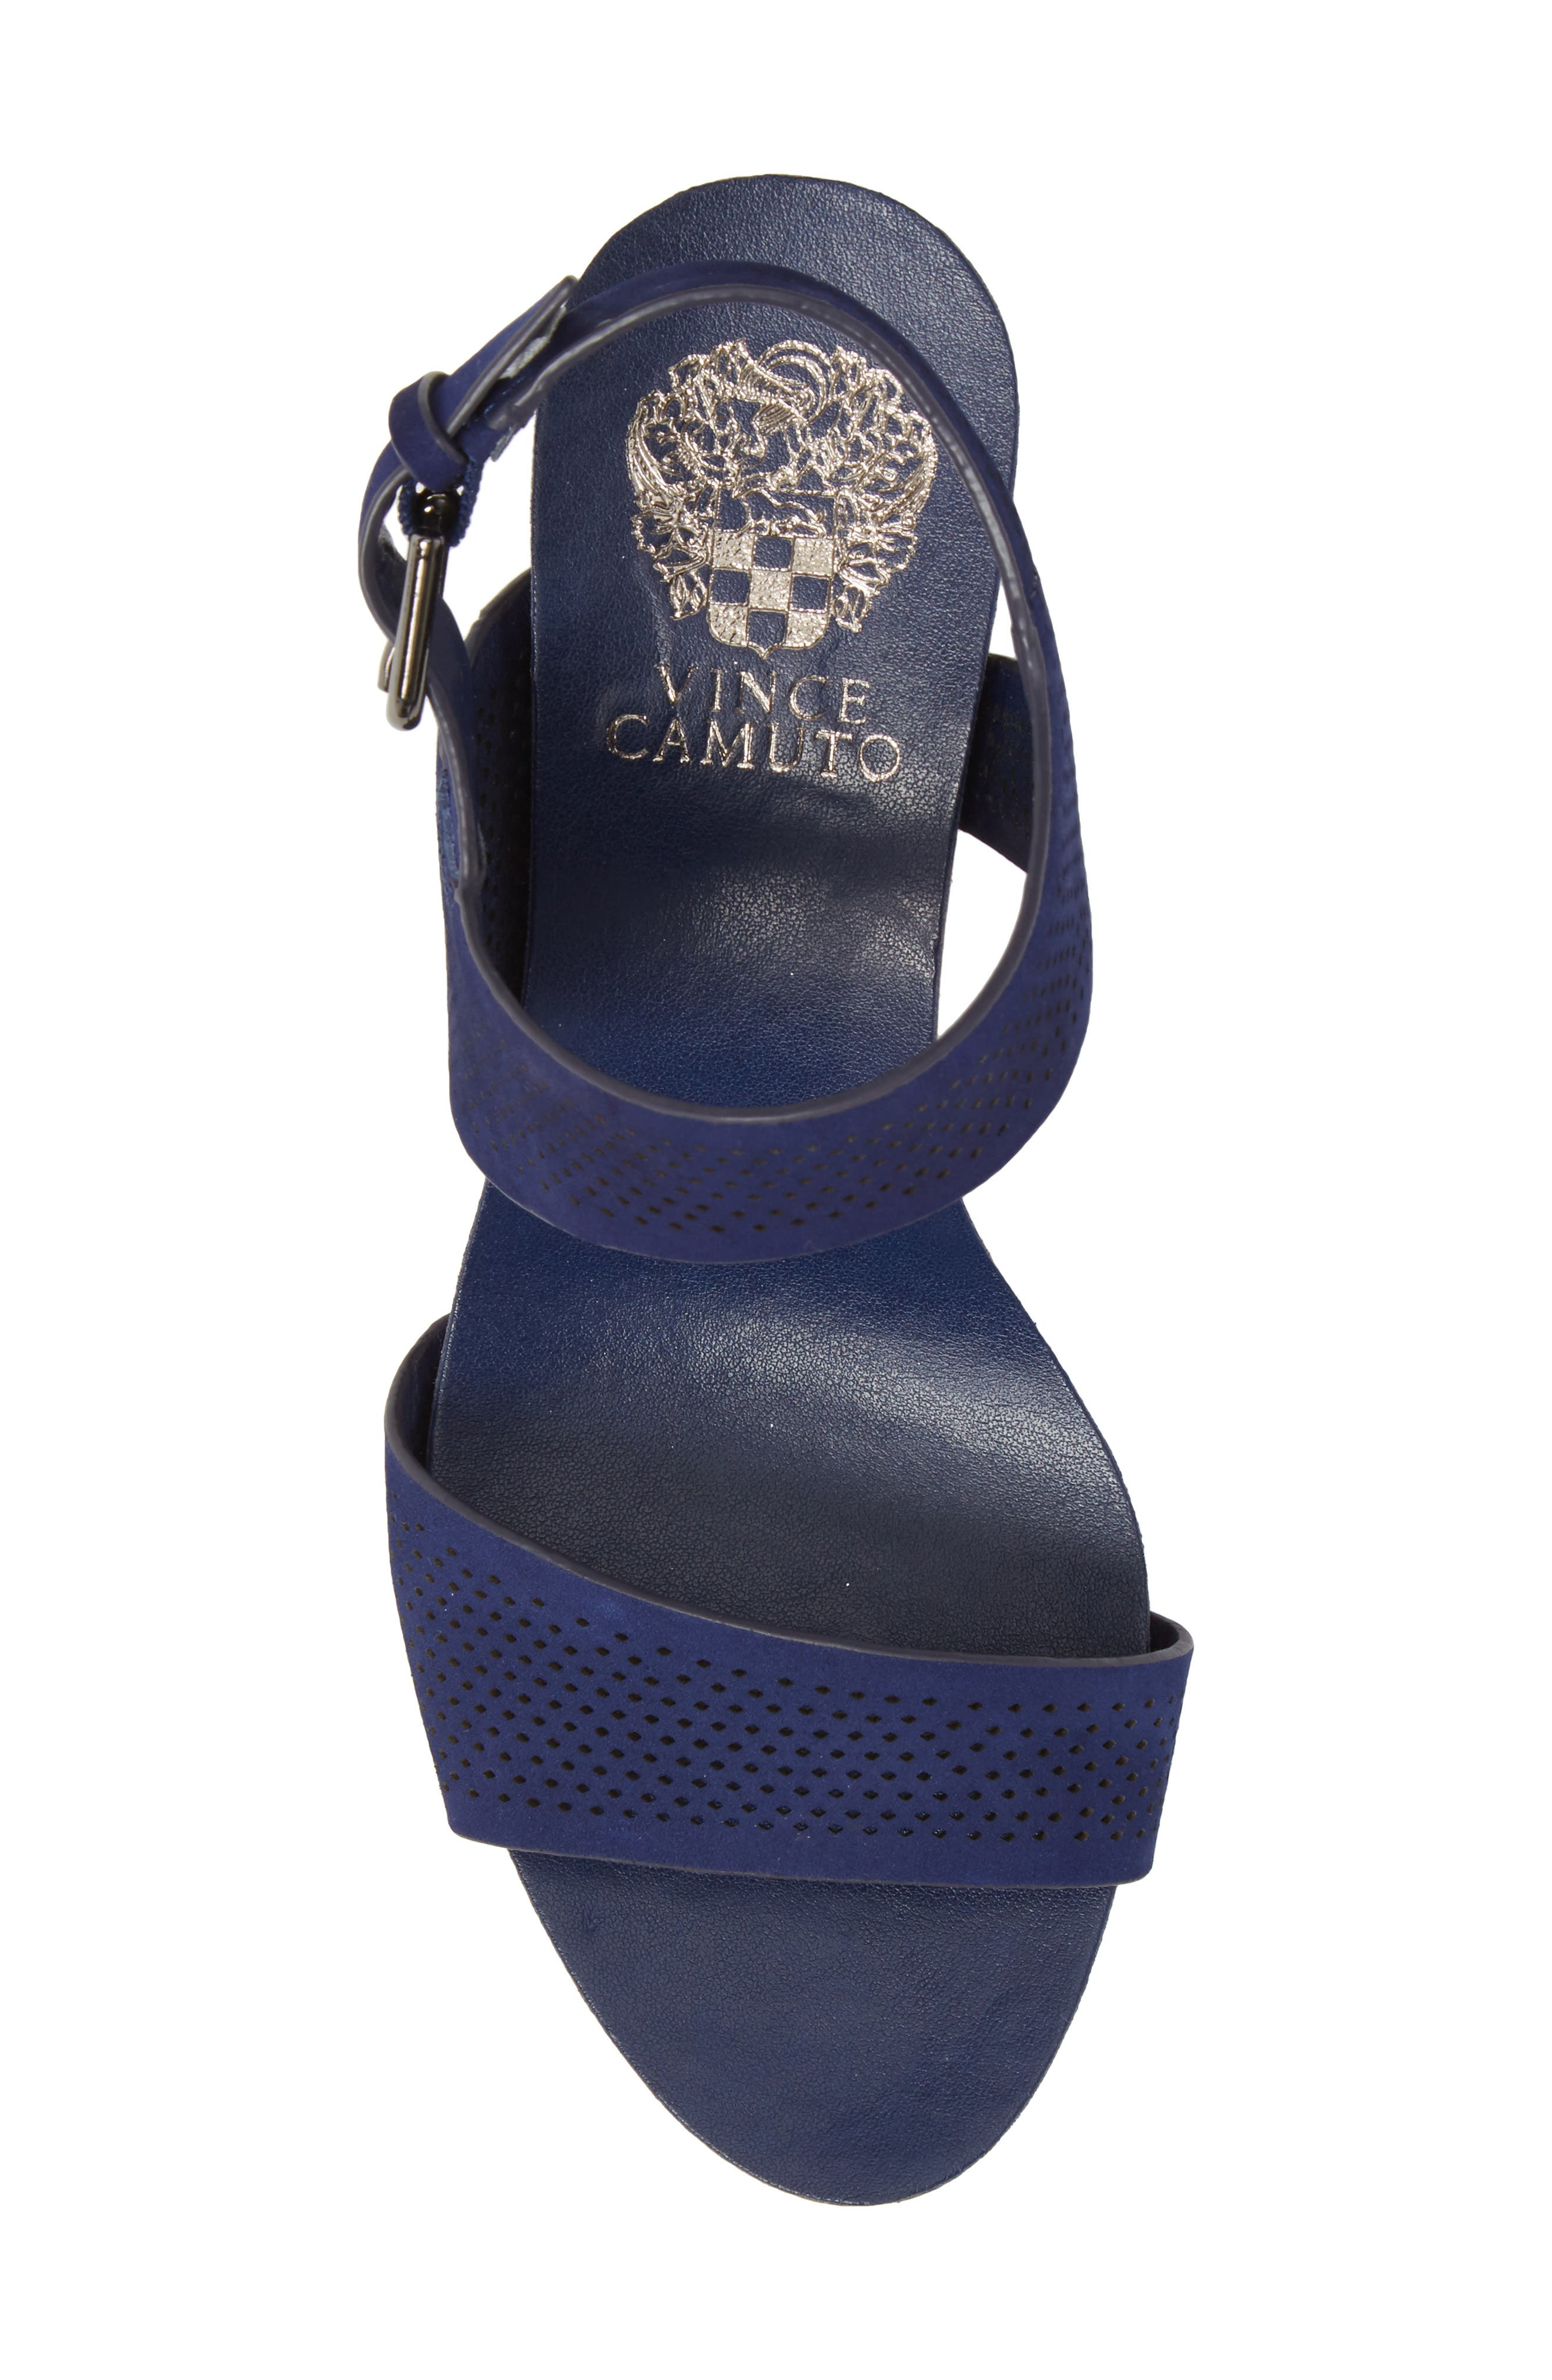 Vessinta Platform Wedge,                             Alternate thumbnail 5, color,                             Moody Blue Leather